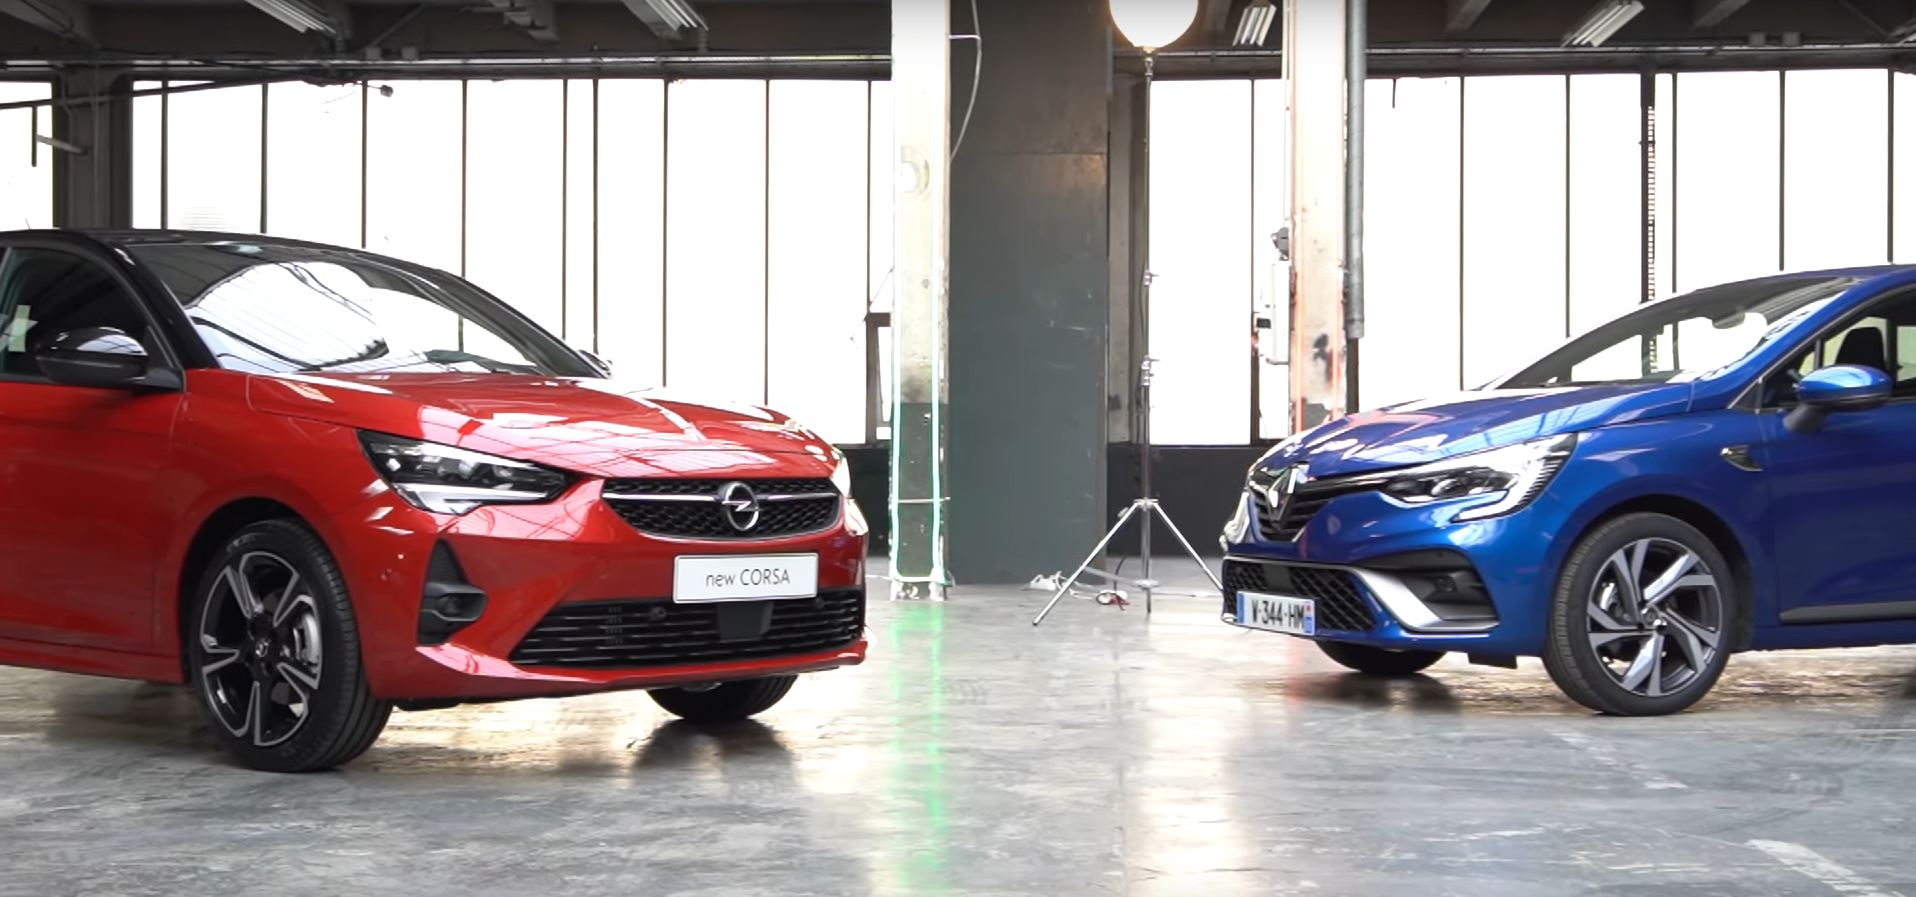 2020 Opel Corsa Vs Renault Clio Now A French Car Rivalry